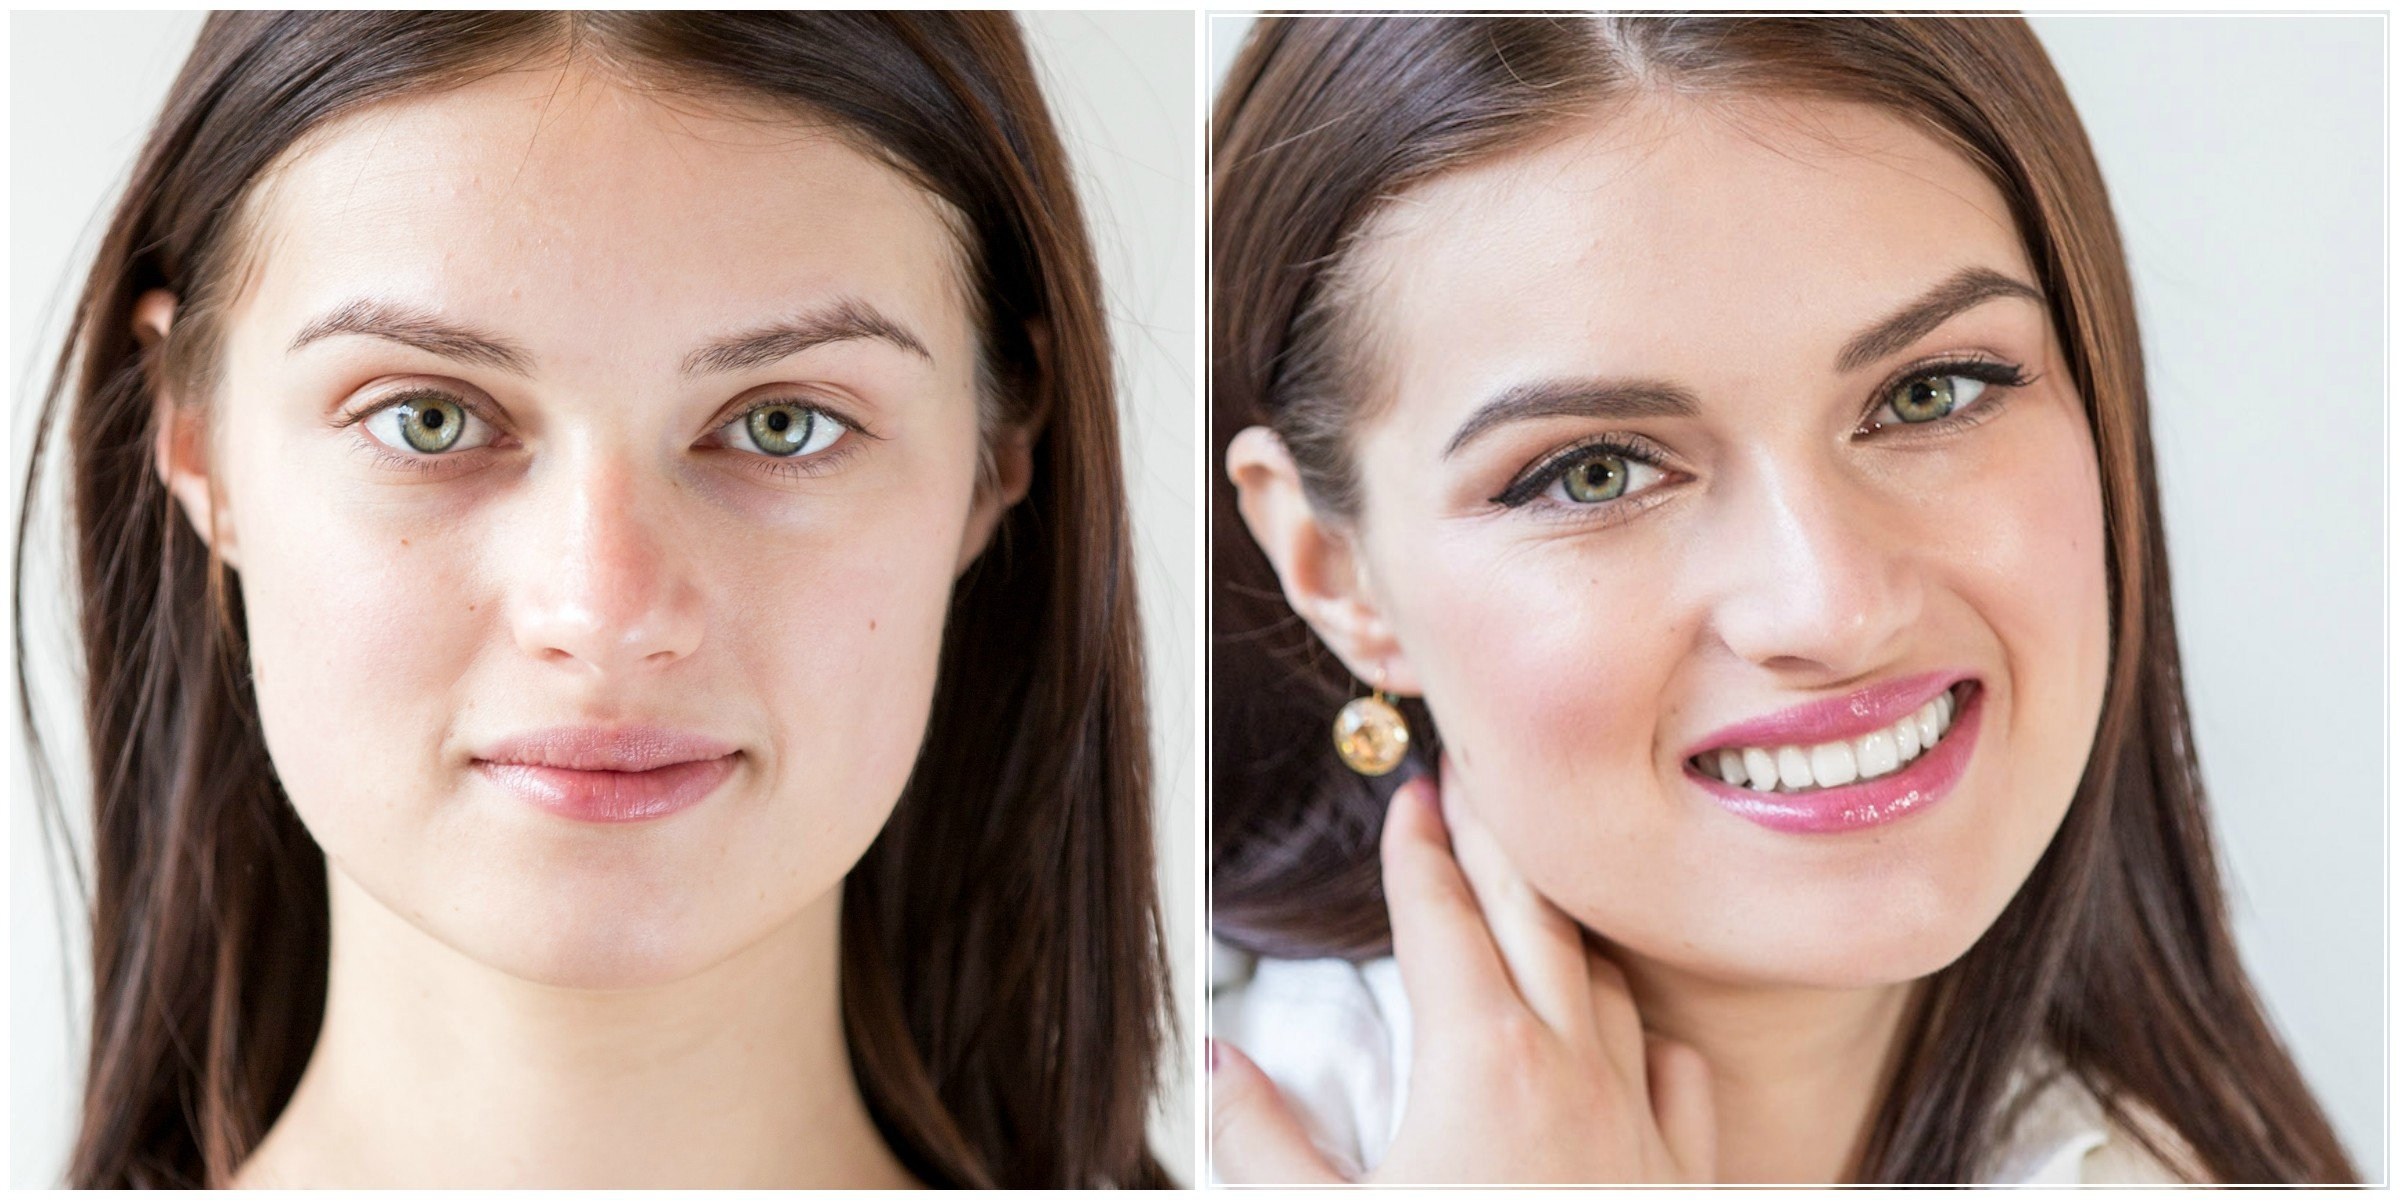 Before/After Makeup Look #2 Day Date, Natural Makeup, glow skin, pink lips, thin winged eye-liner, pretty date makeup